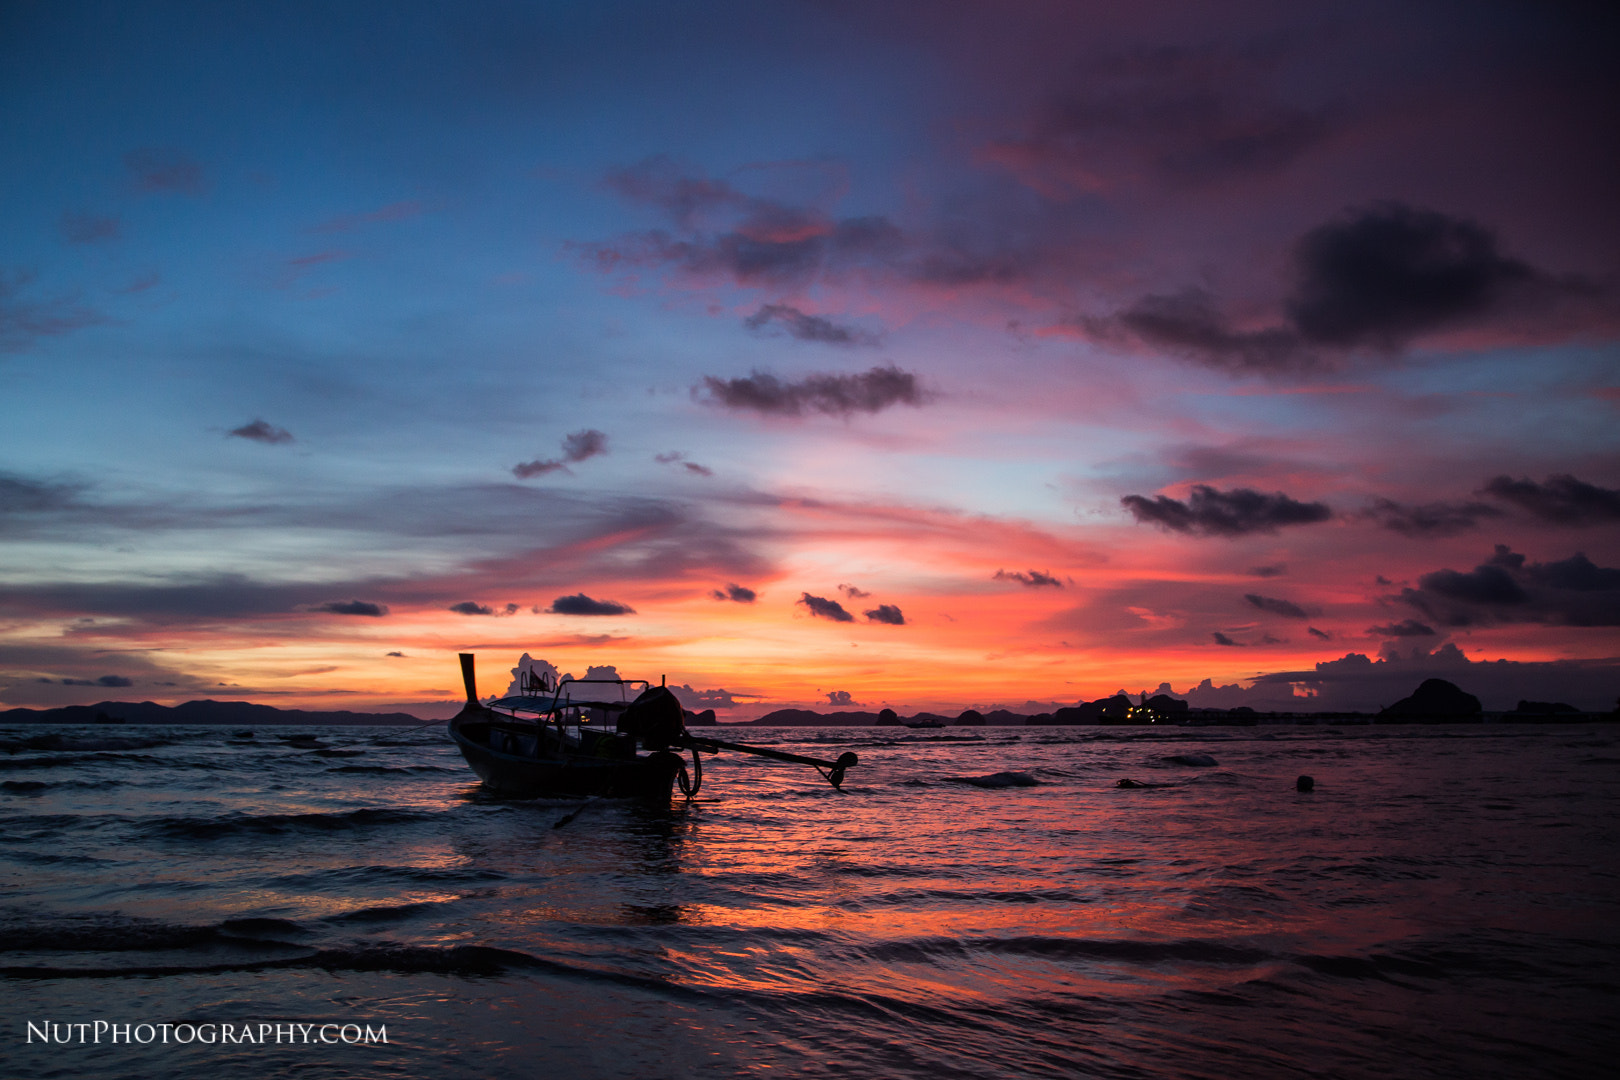 Photograph Last sunset by Chaisit Tularak on 500px